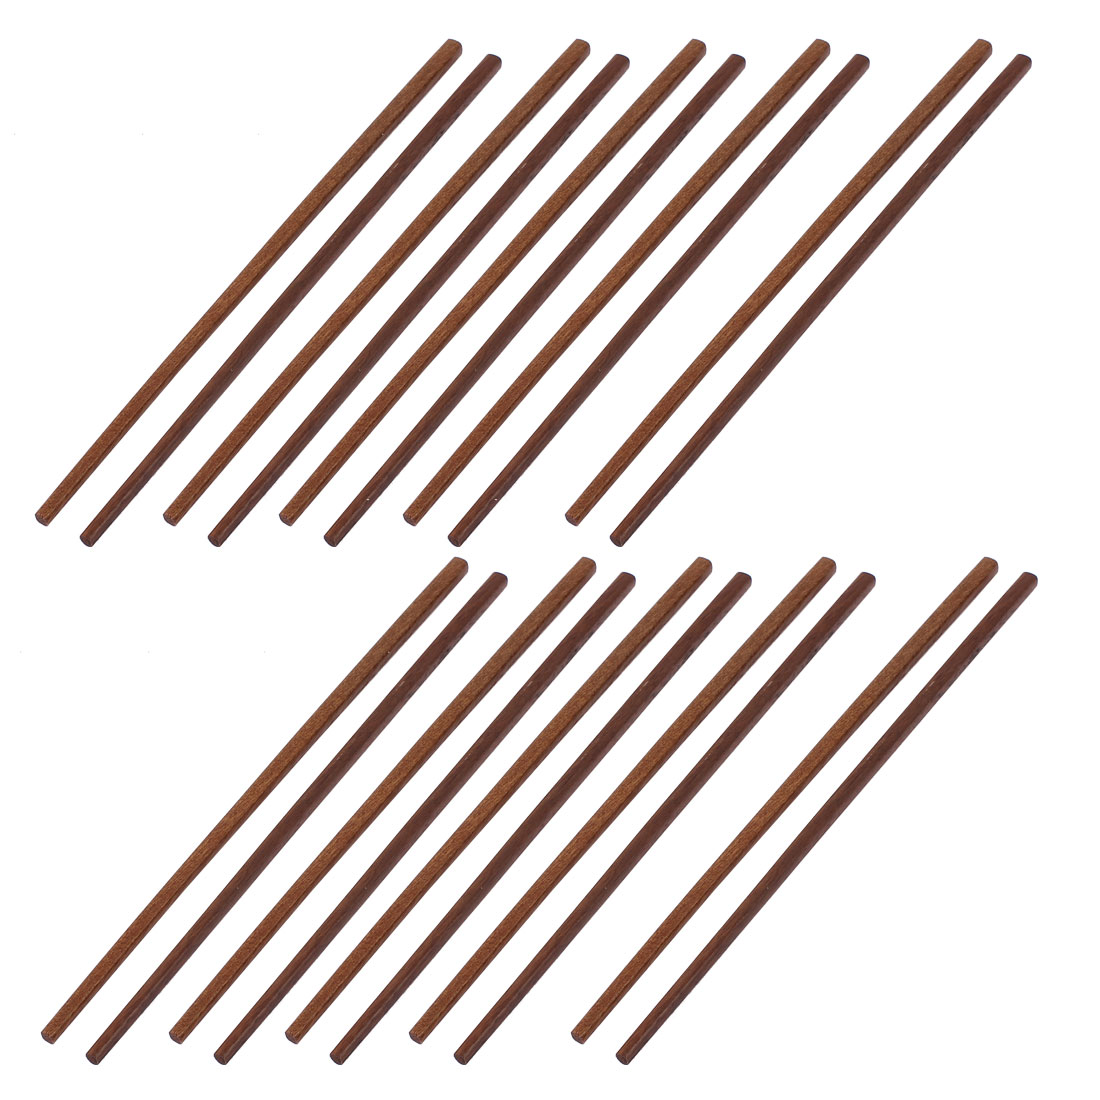 10 Pairs Kitchen Chinese Dinner Eco-friendly Wooden Chopsticks Brown